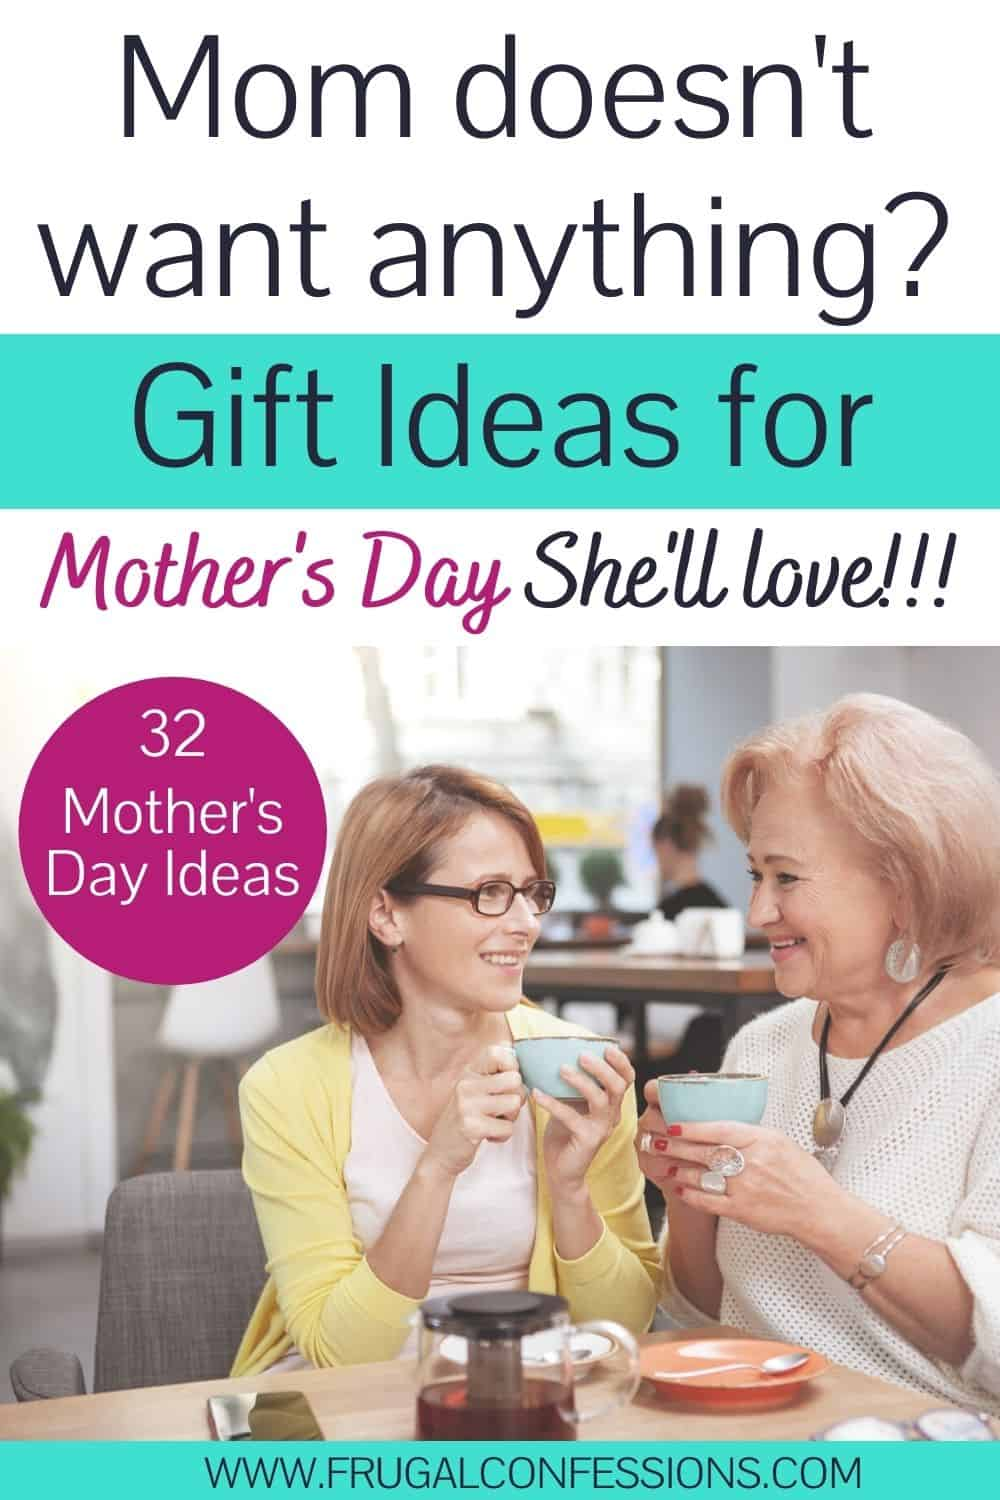 """adult woman having tea with mother, both smiling, text overlay """"mom doesn't want anything? Gift ideas for Mother's Day she'll love"""""""